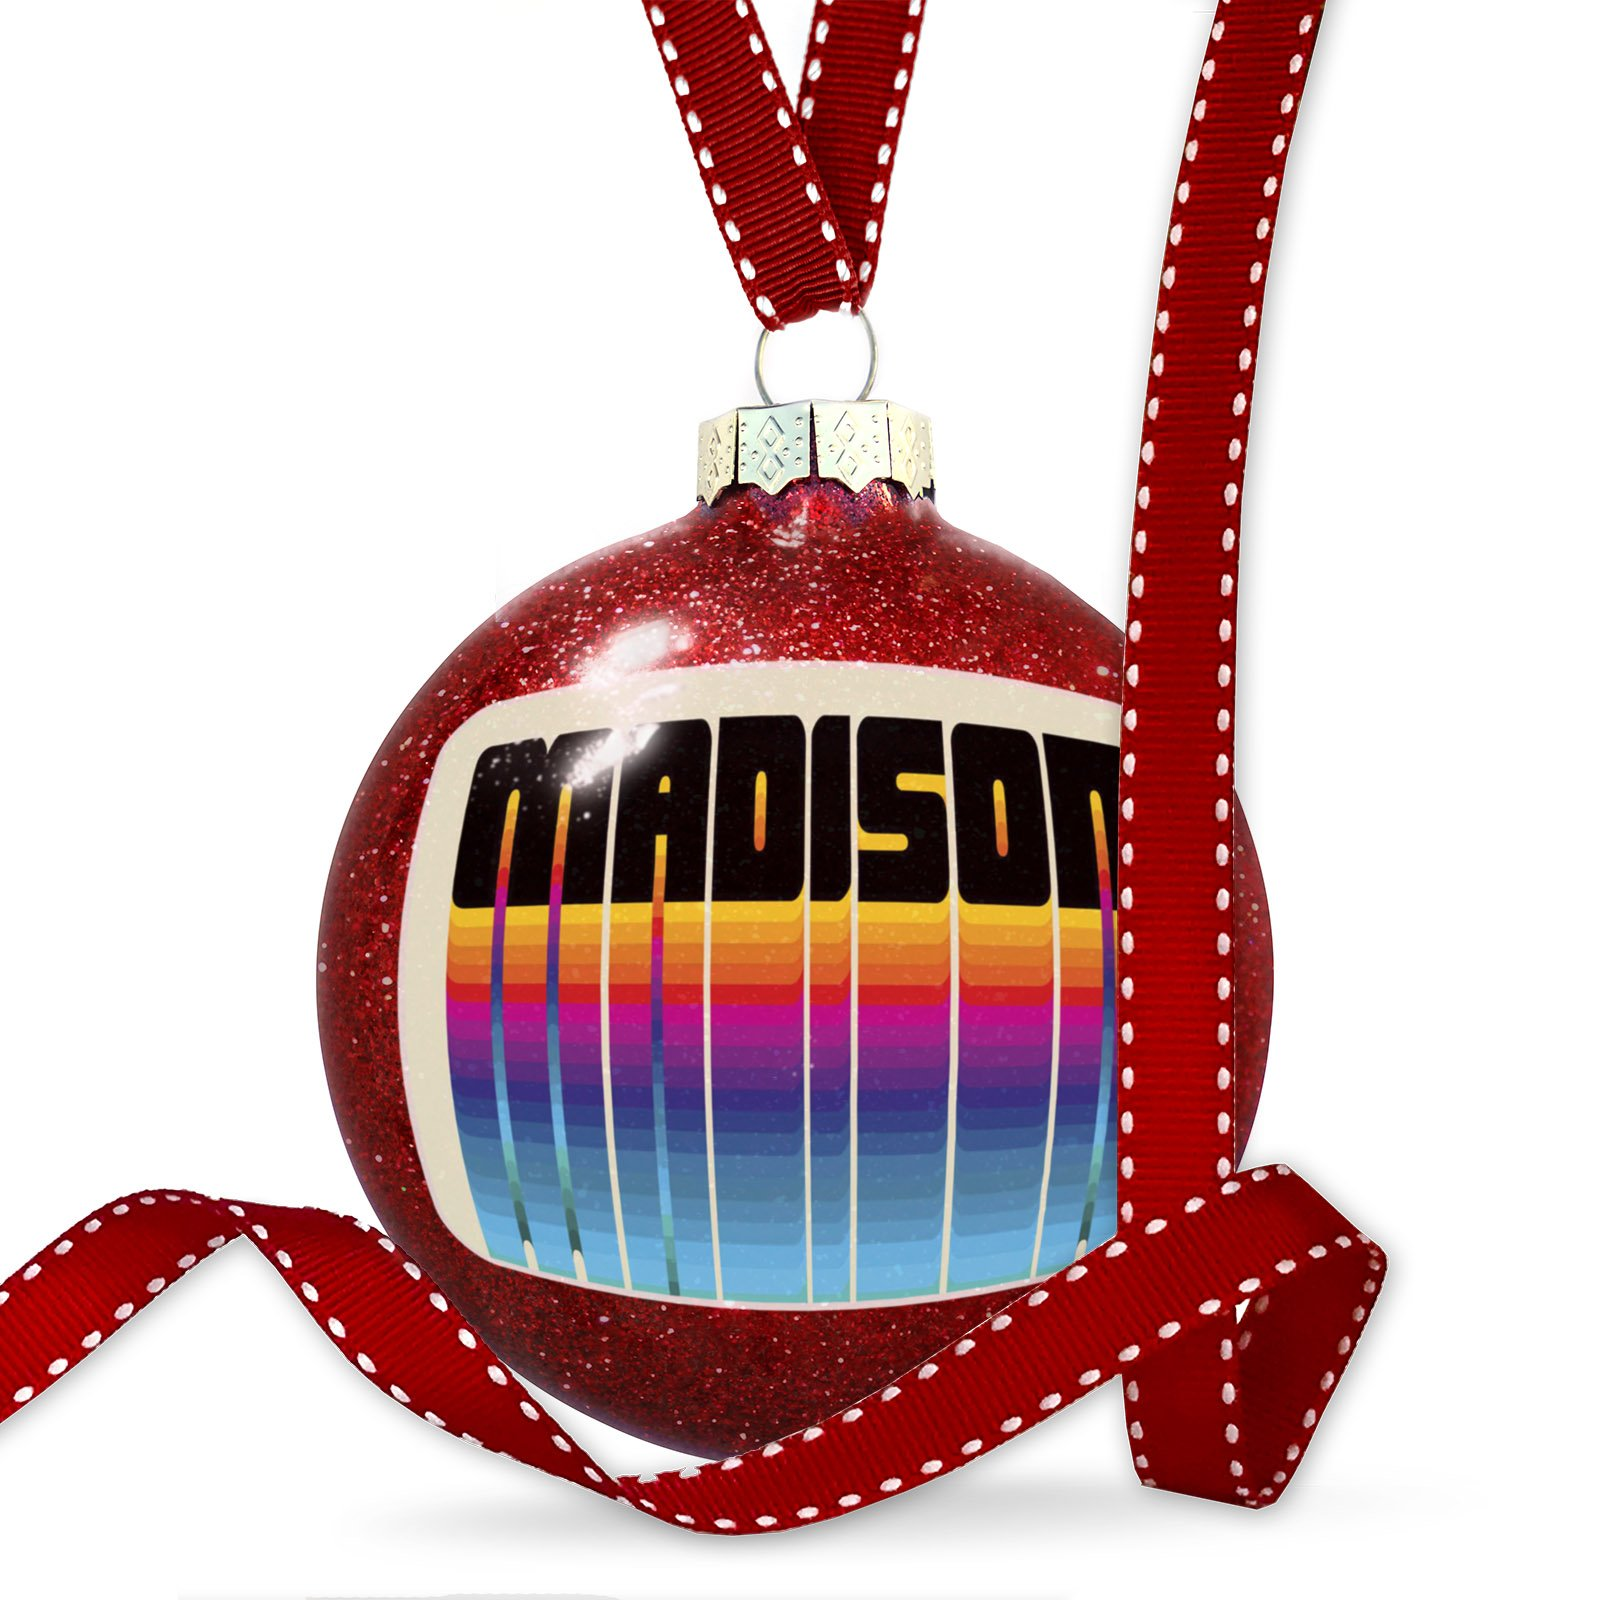 Christmas Decoration Retro Cites States Countries Madison Ornament